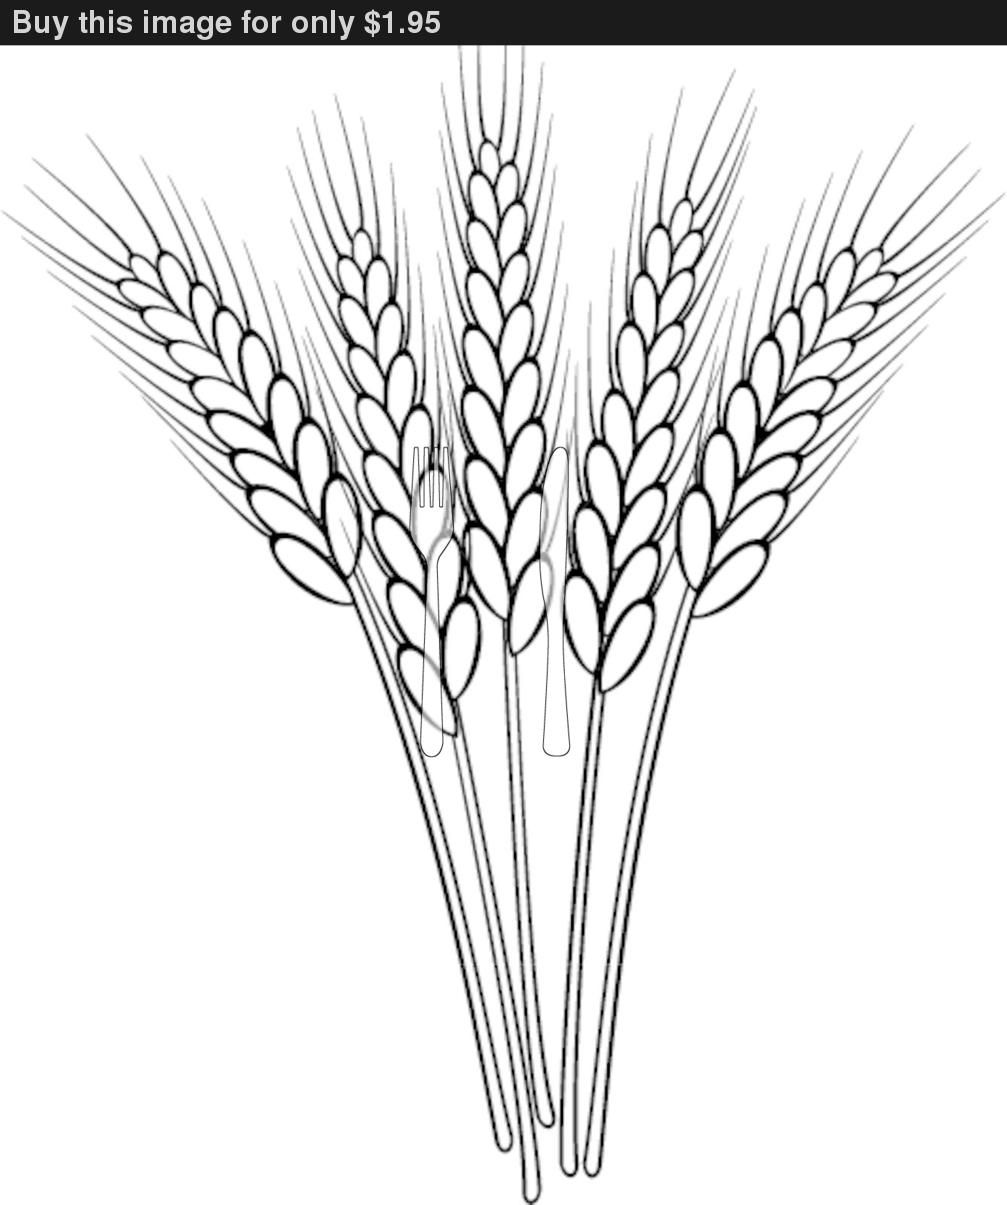 Wheat clipart outline. Pin on elementary education